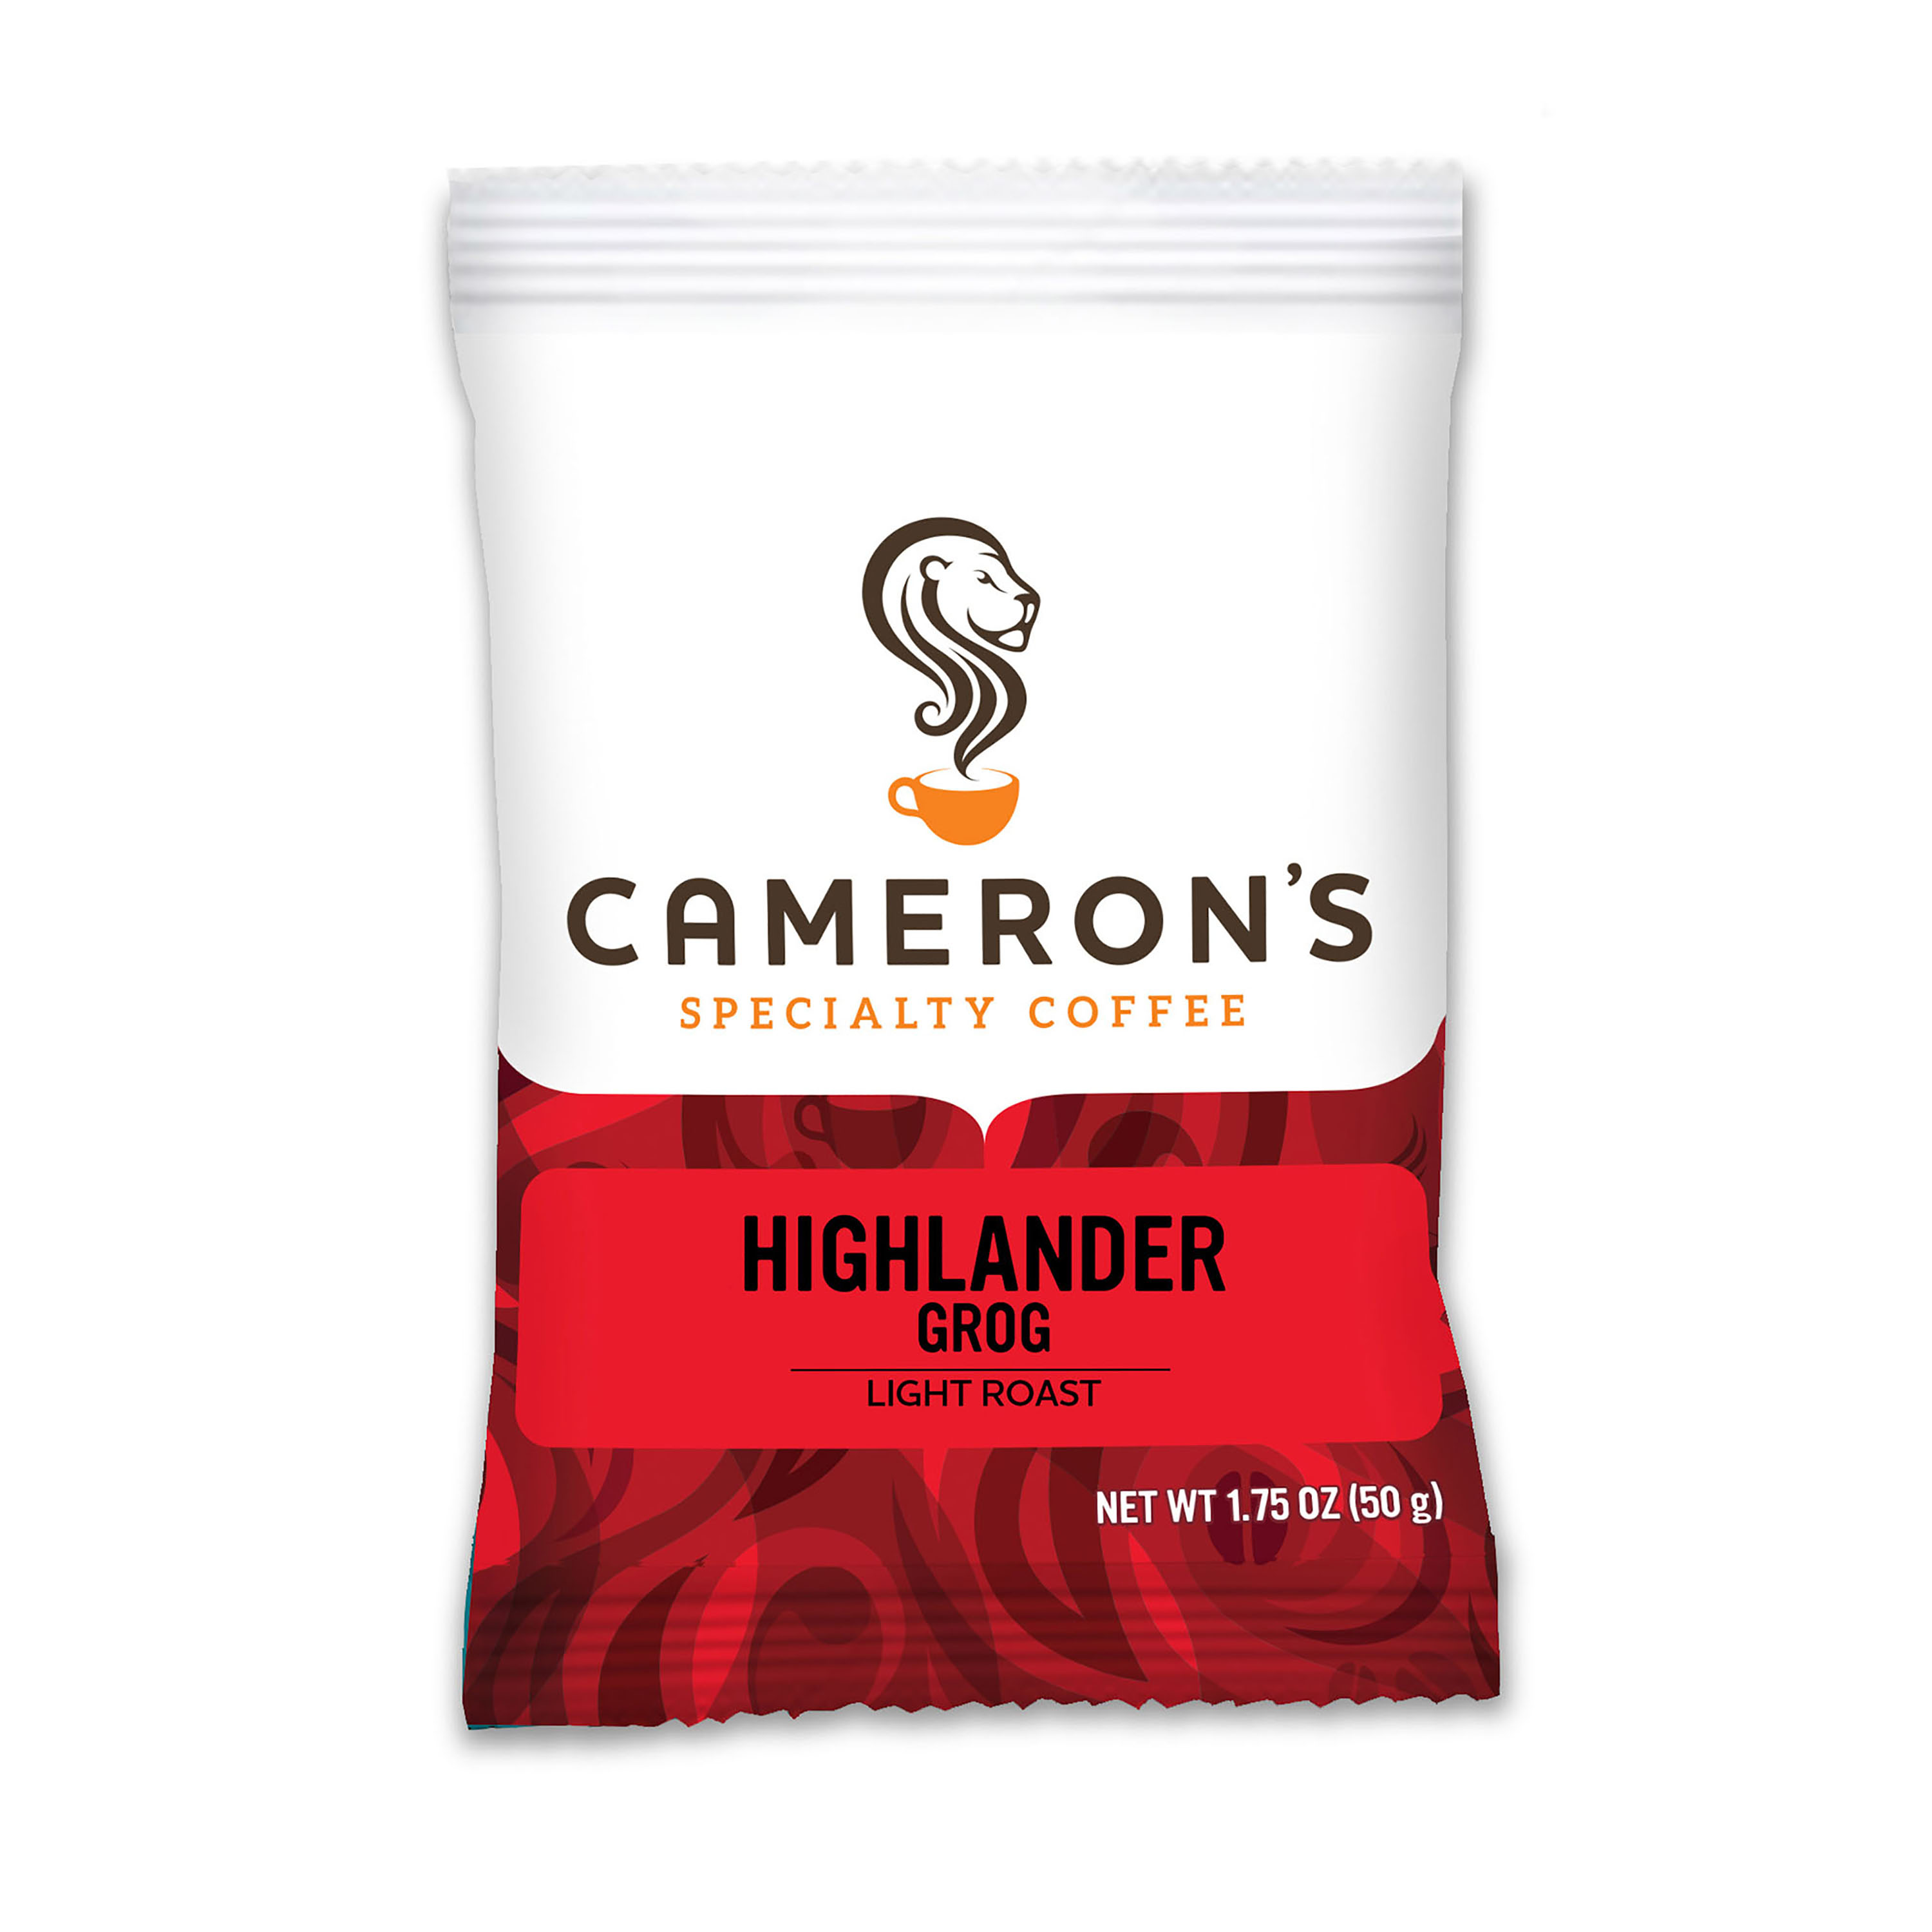 Cameron's Specialty Coffee Highlander Grog Ground, Portioned Packet, 1.75 oz